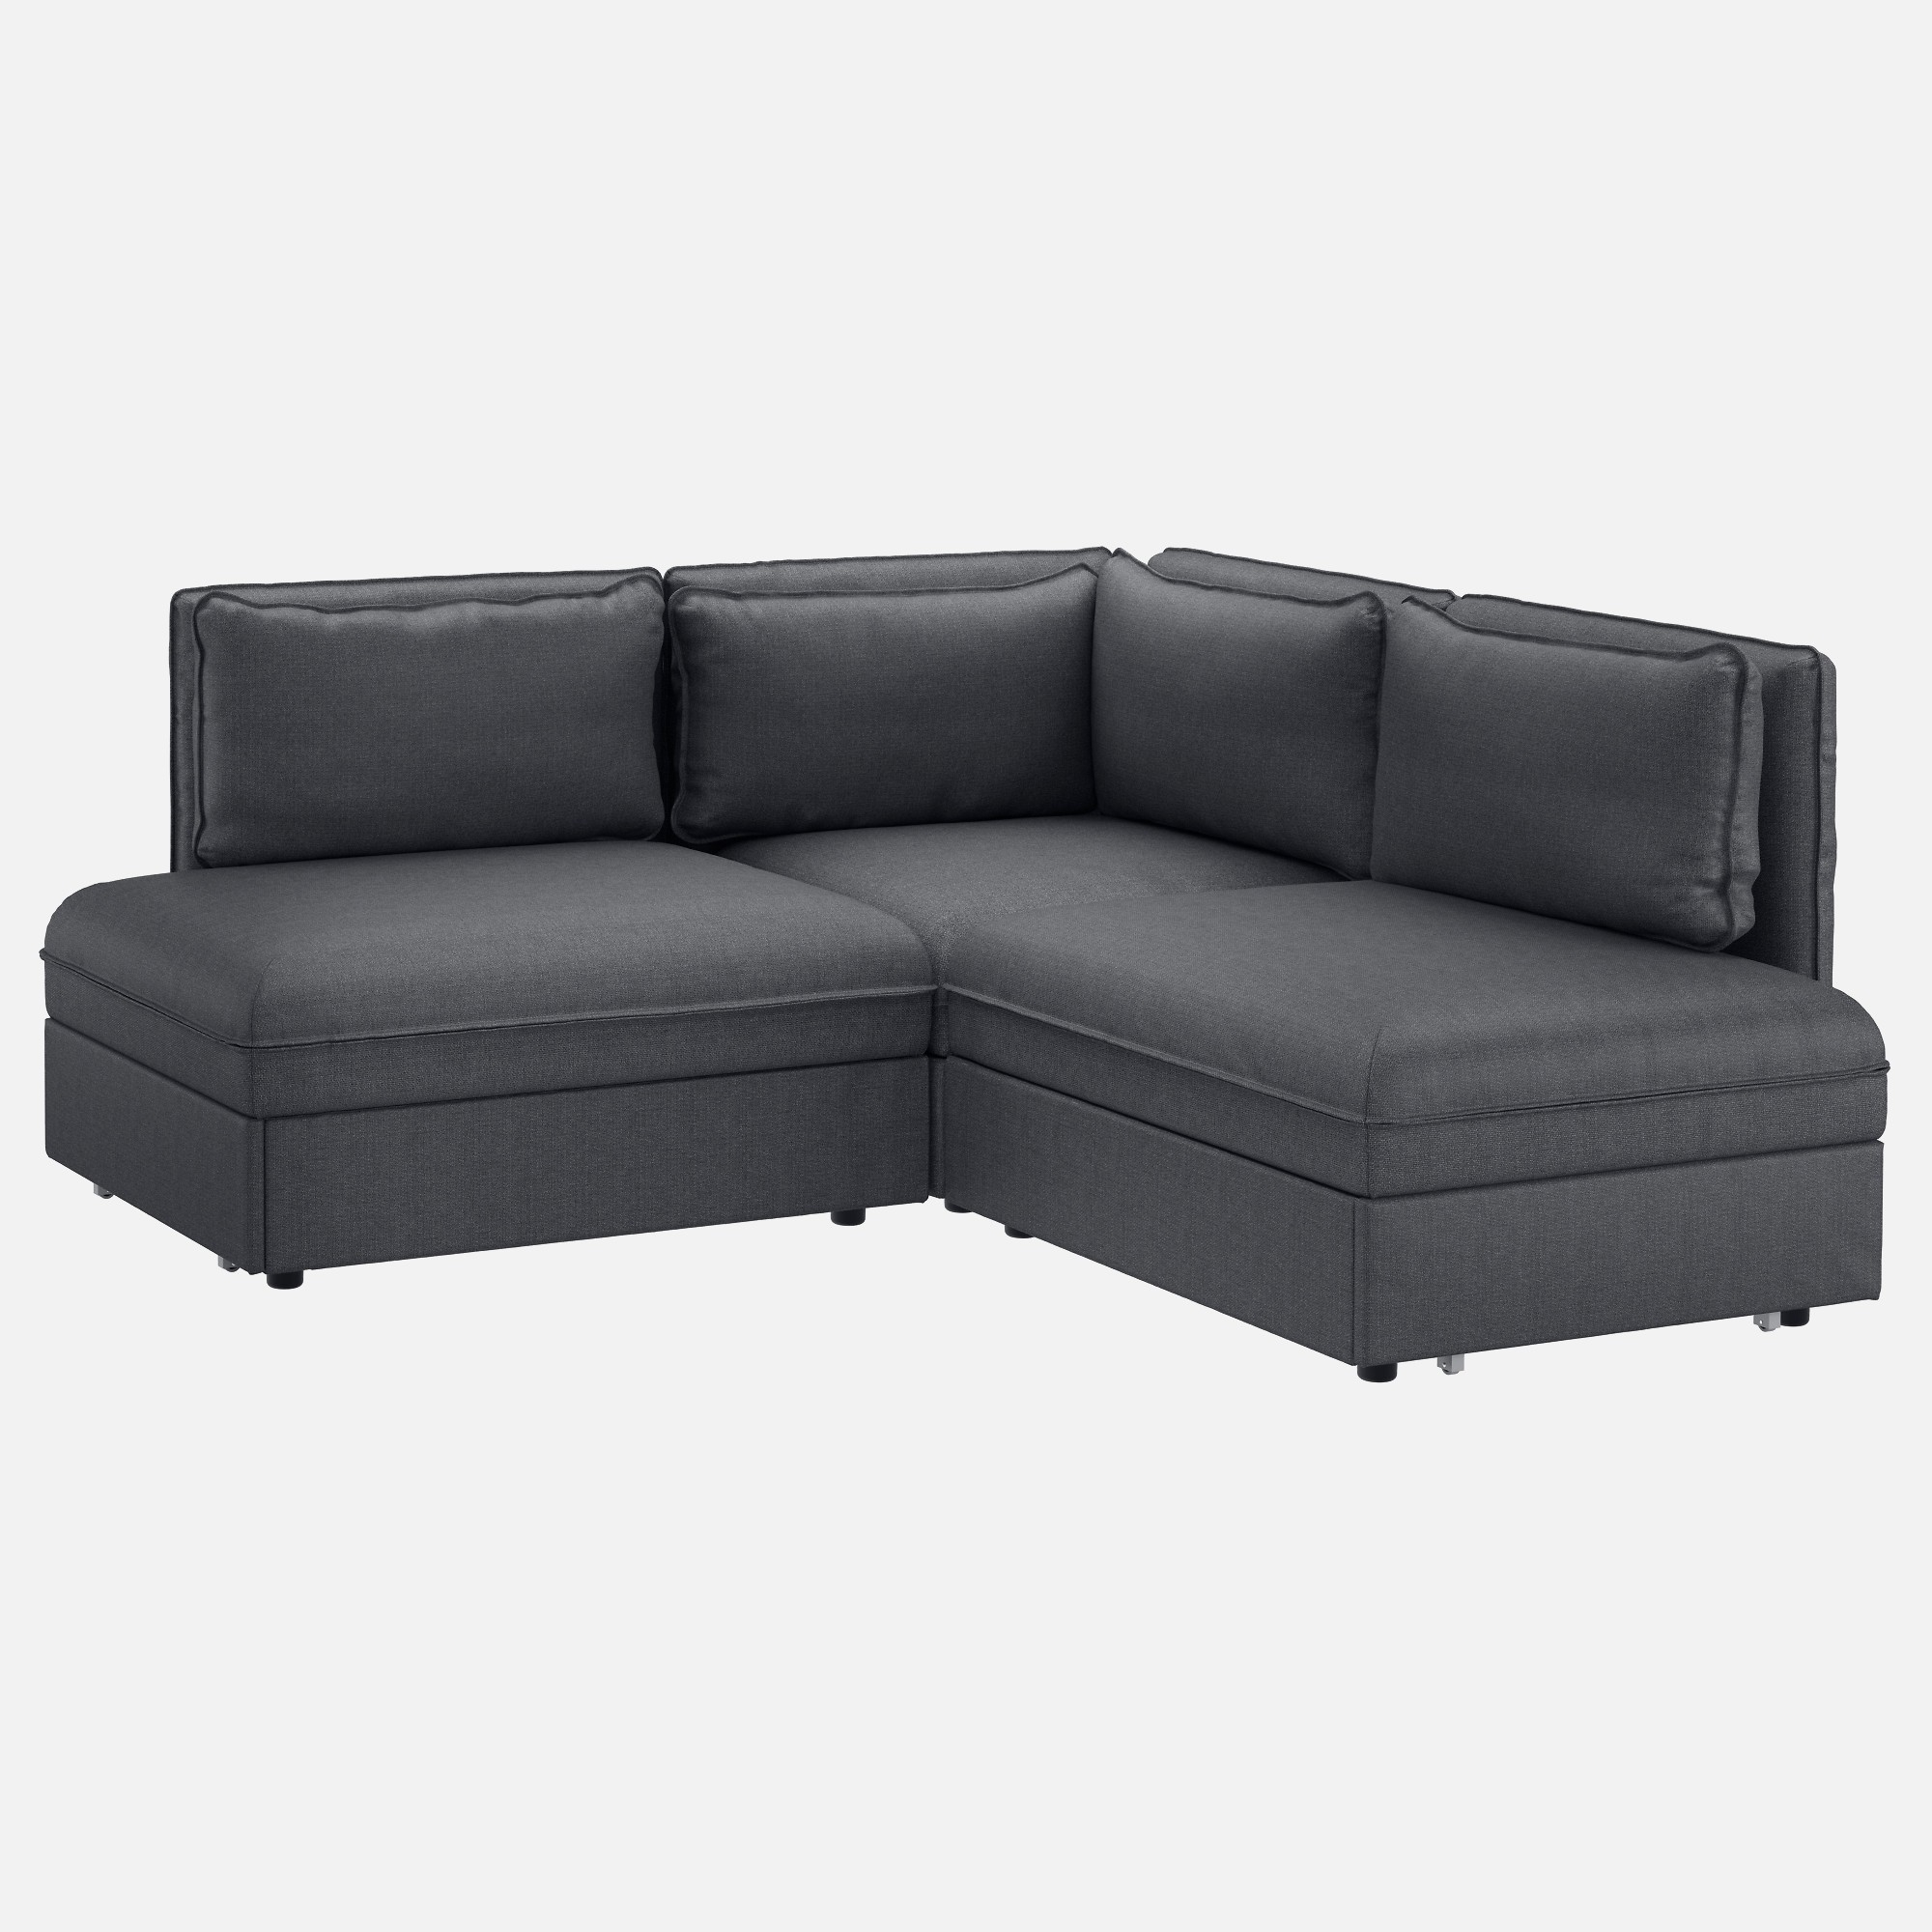 the with sofas big ll pin free products shipping sleeper monroe great stuff most at even furniture love sofa wayfair deals all you on cheap